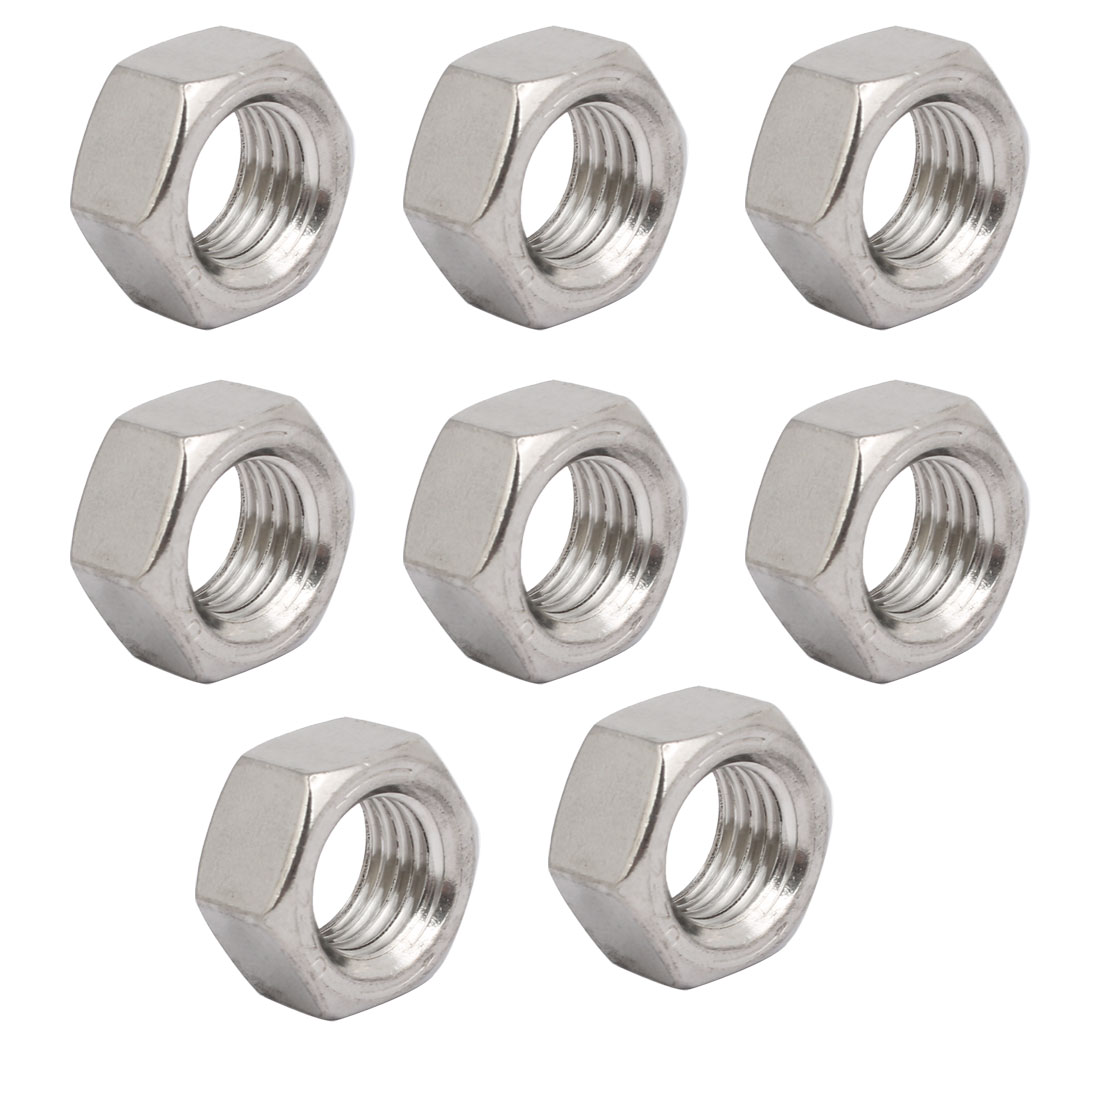 8pcs M20 x 2.5mm Pitch Metric Thread 201 Stainless Steel Left Hand Hex Nuts